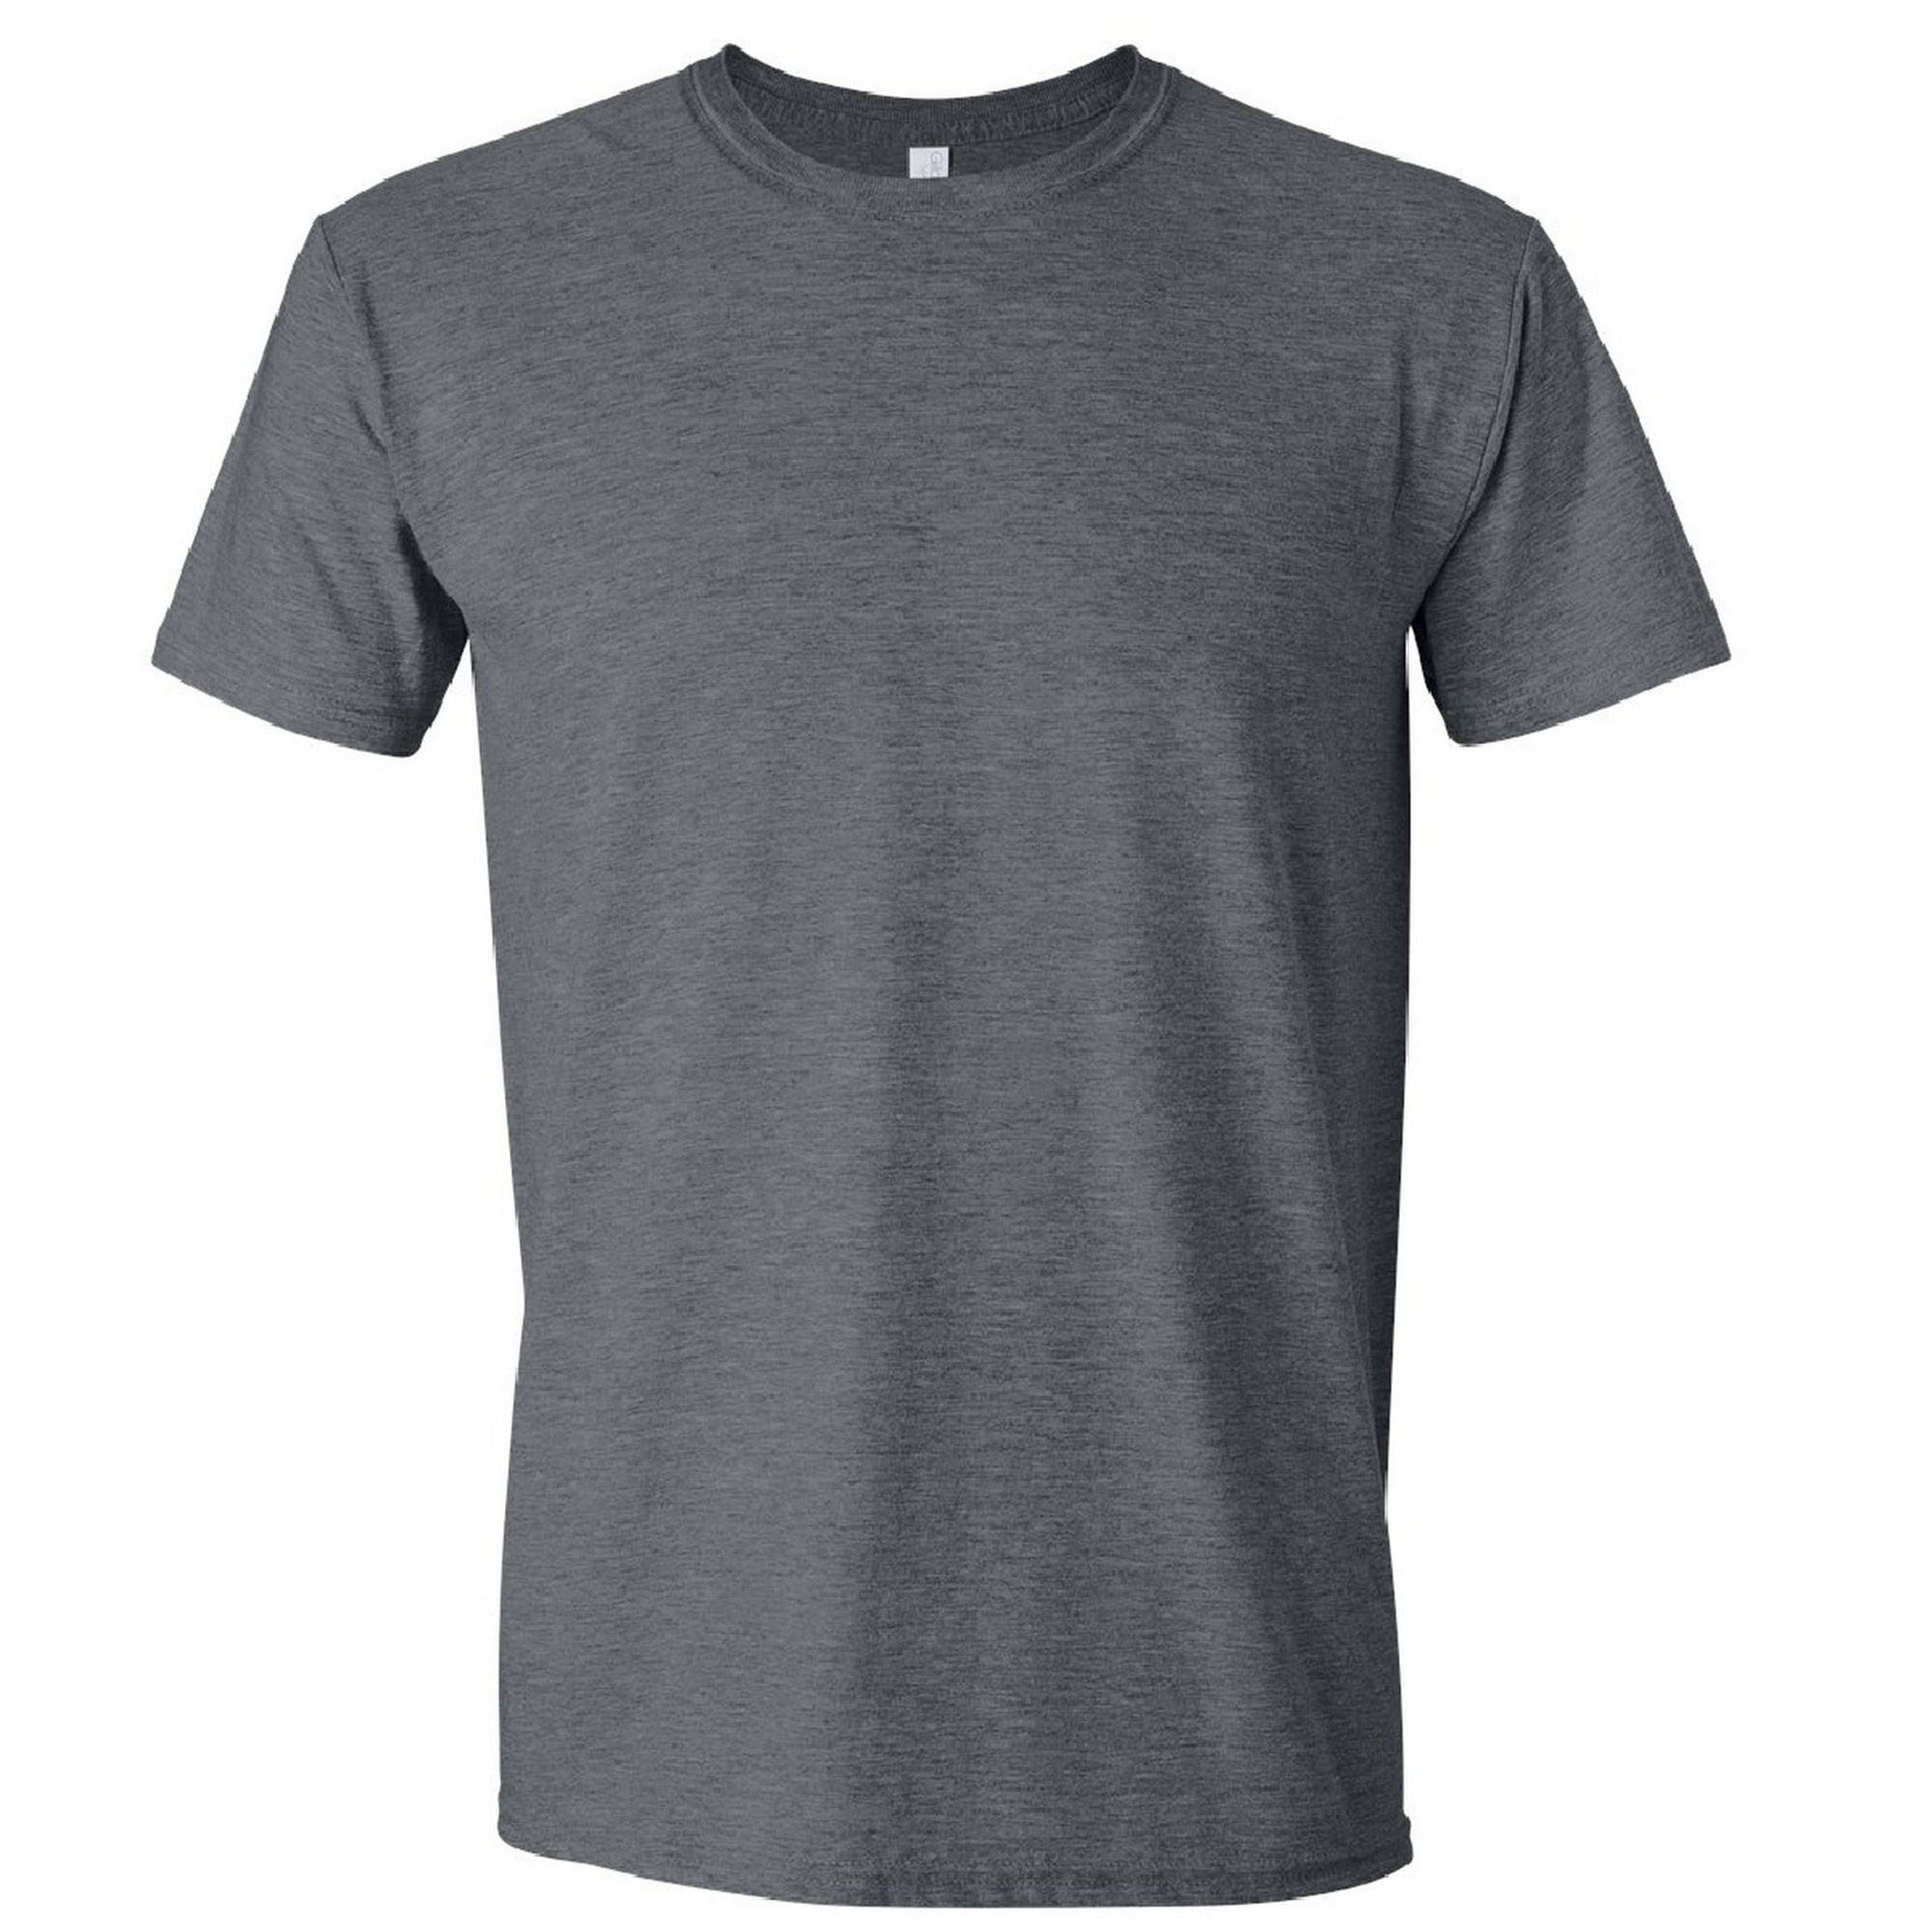 Gildan Mens Short Sleeve Soft-Style T-Shirt (S) (Dark Chocolate)